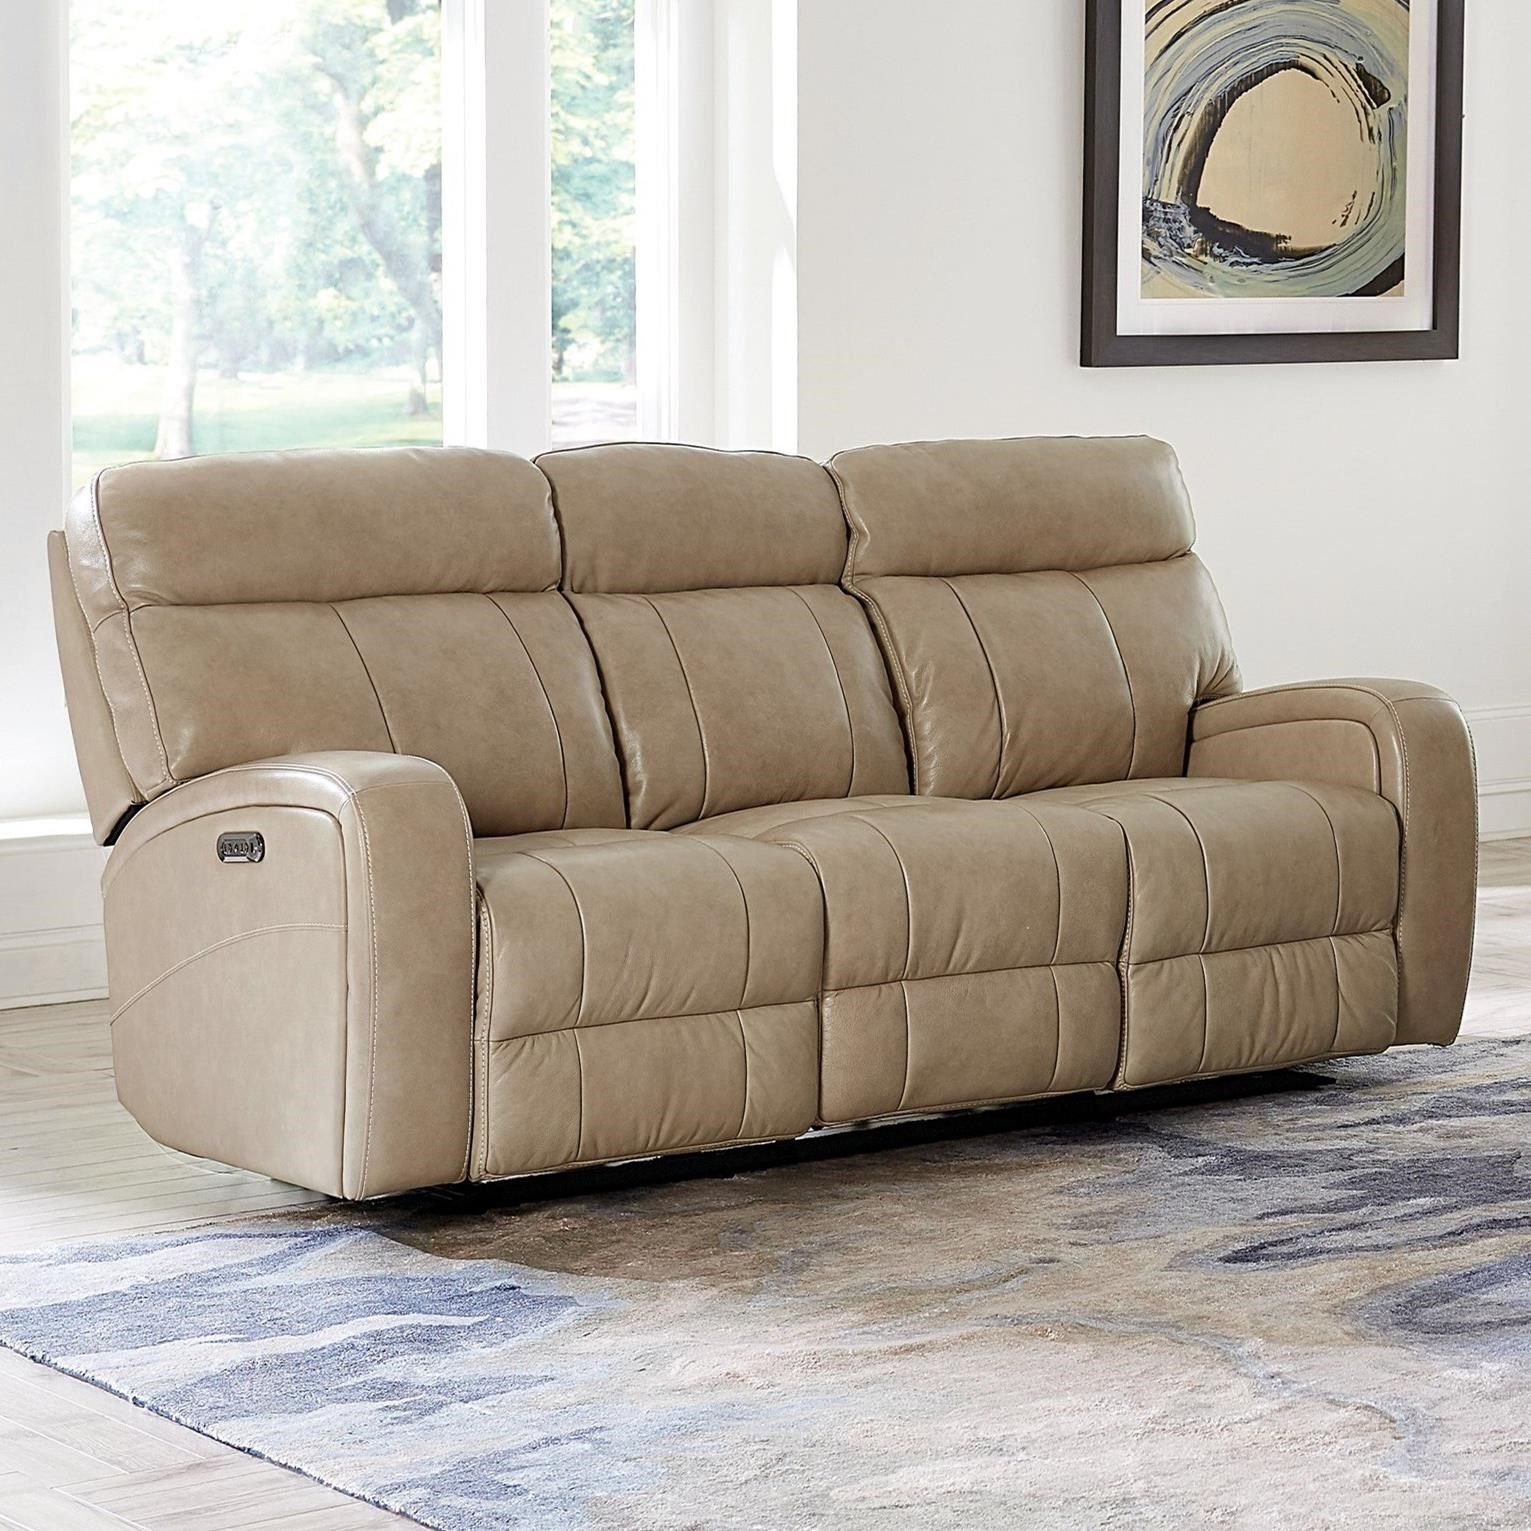 Picture of: Bassett Club Level Beaumont 3717 P62a Power Reclining Sofa With Usb Charging Ports Becker Furniture Reclining Sofas